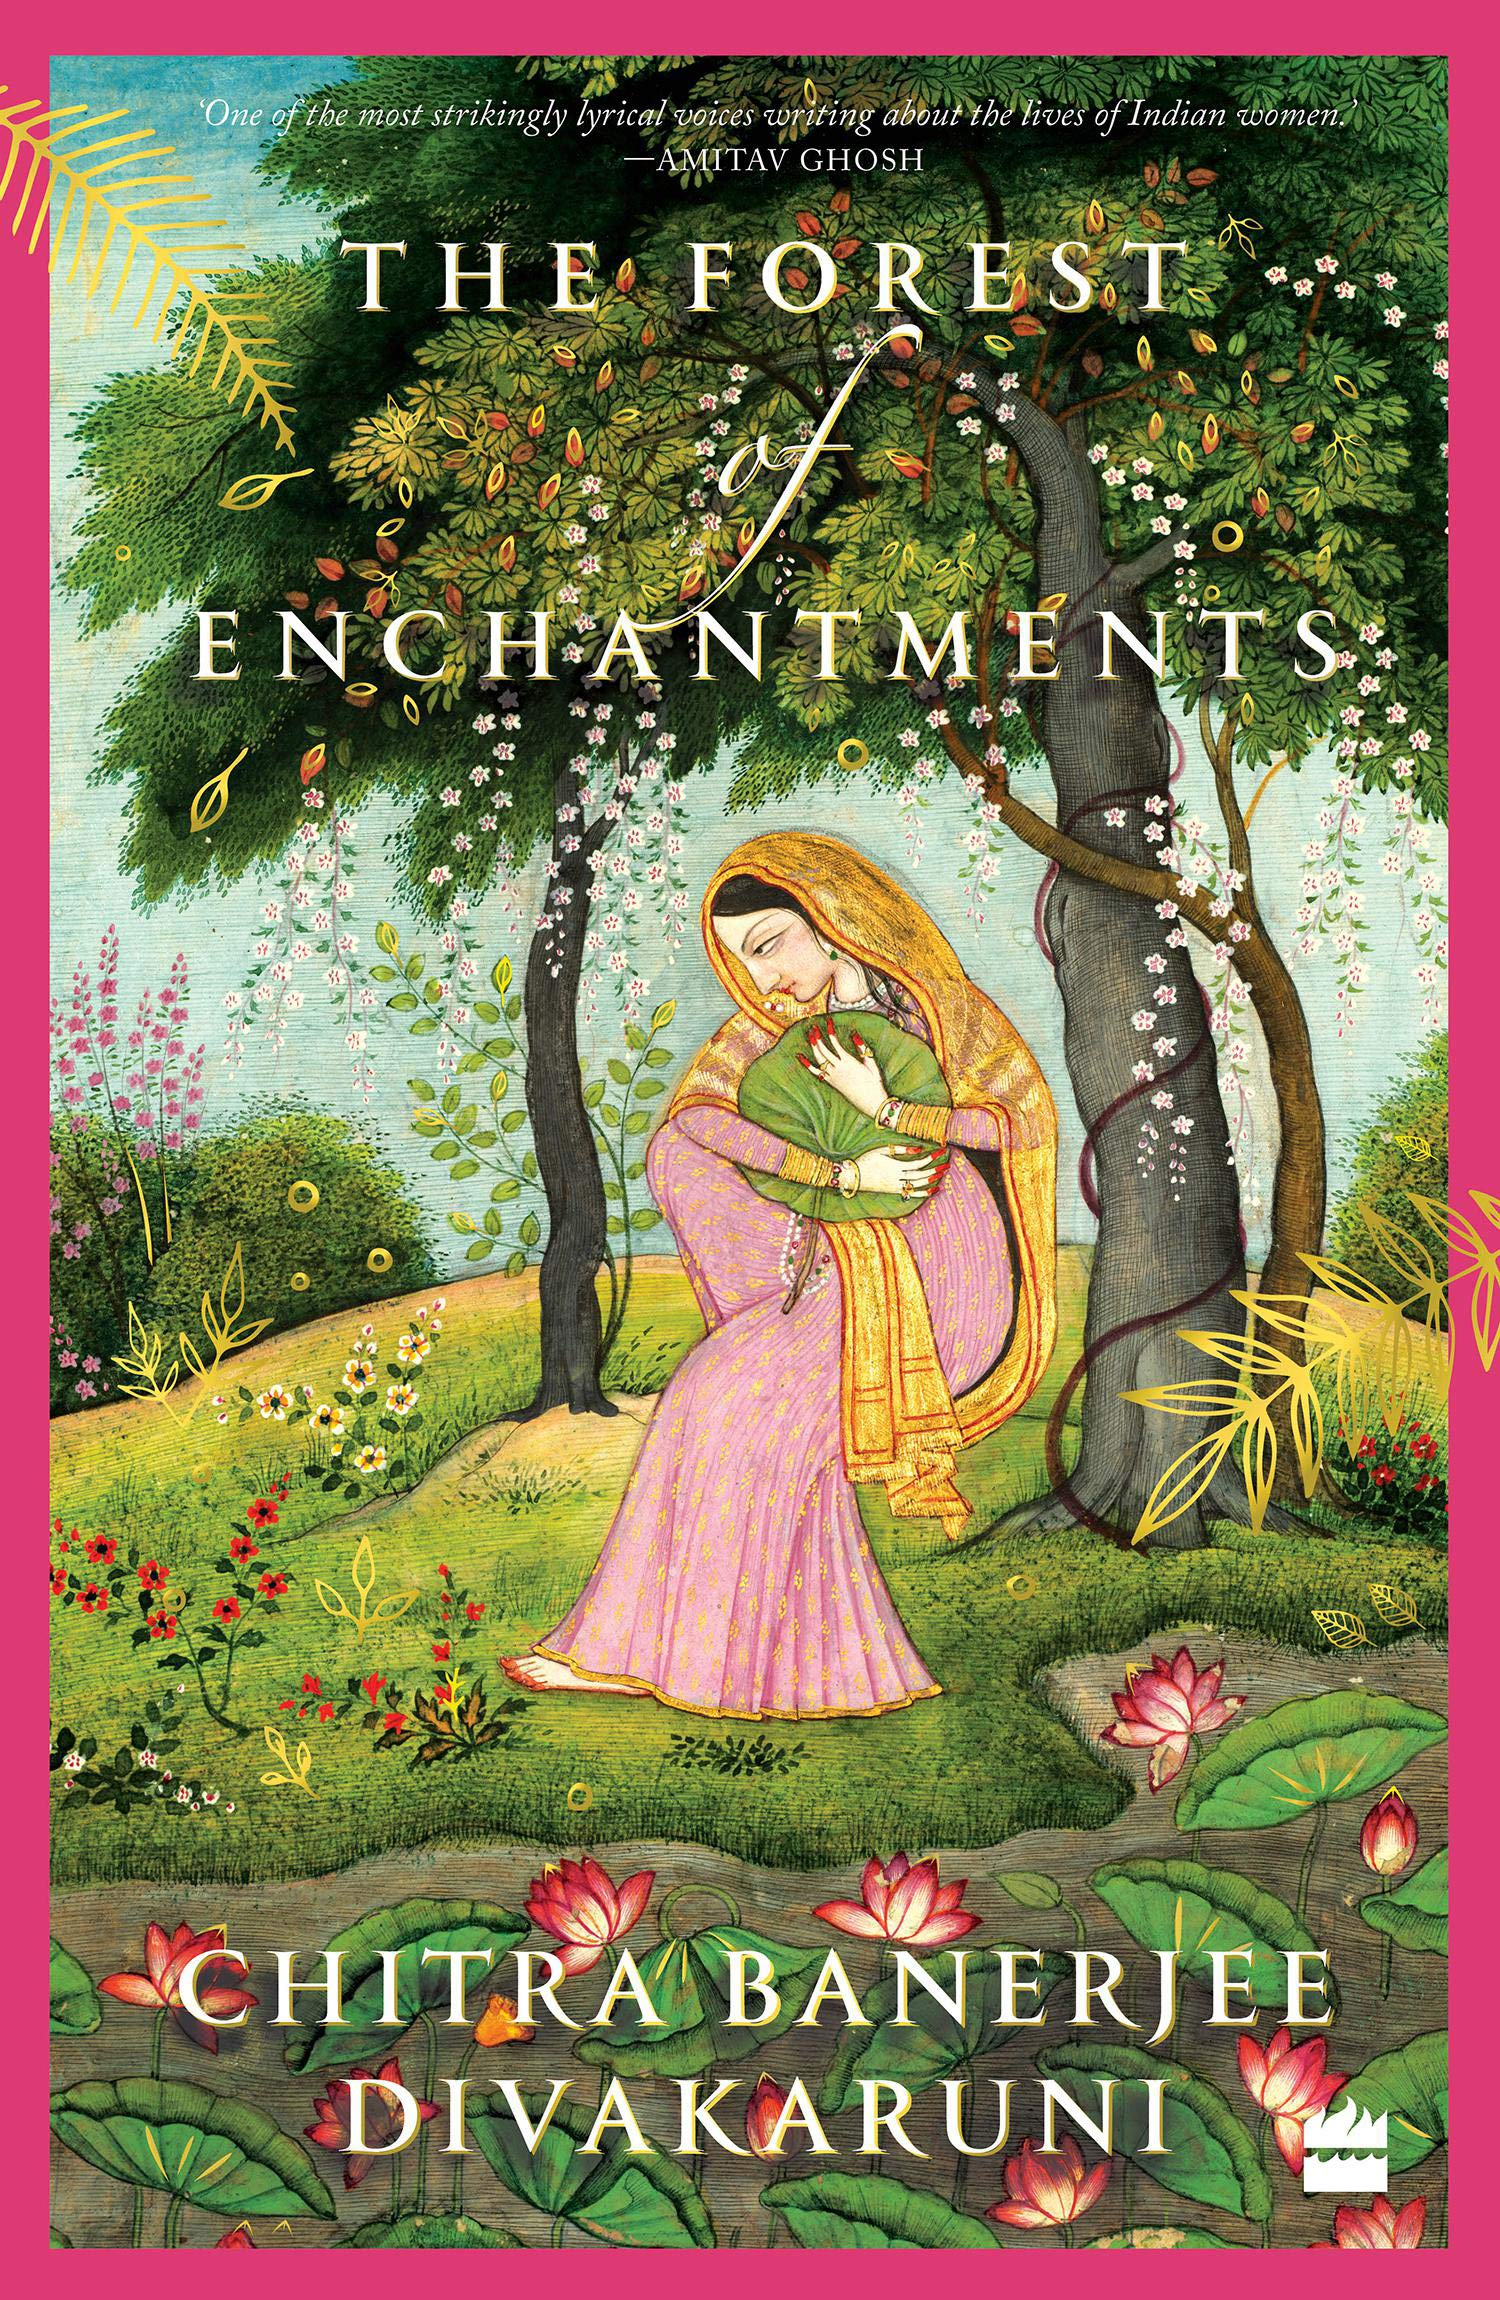 Book Review - The Forest of Enchantments by Chitra Banerjee Divakaruni